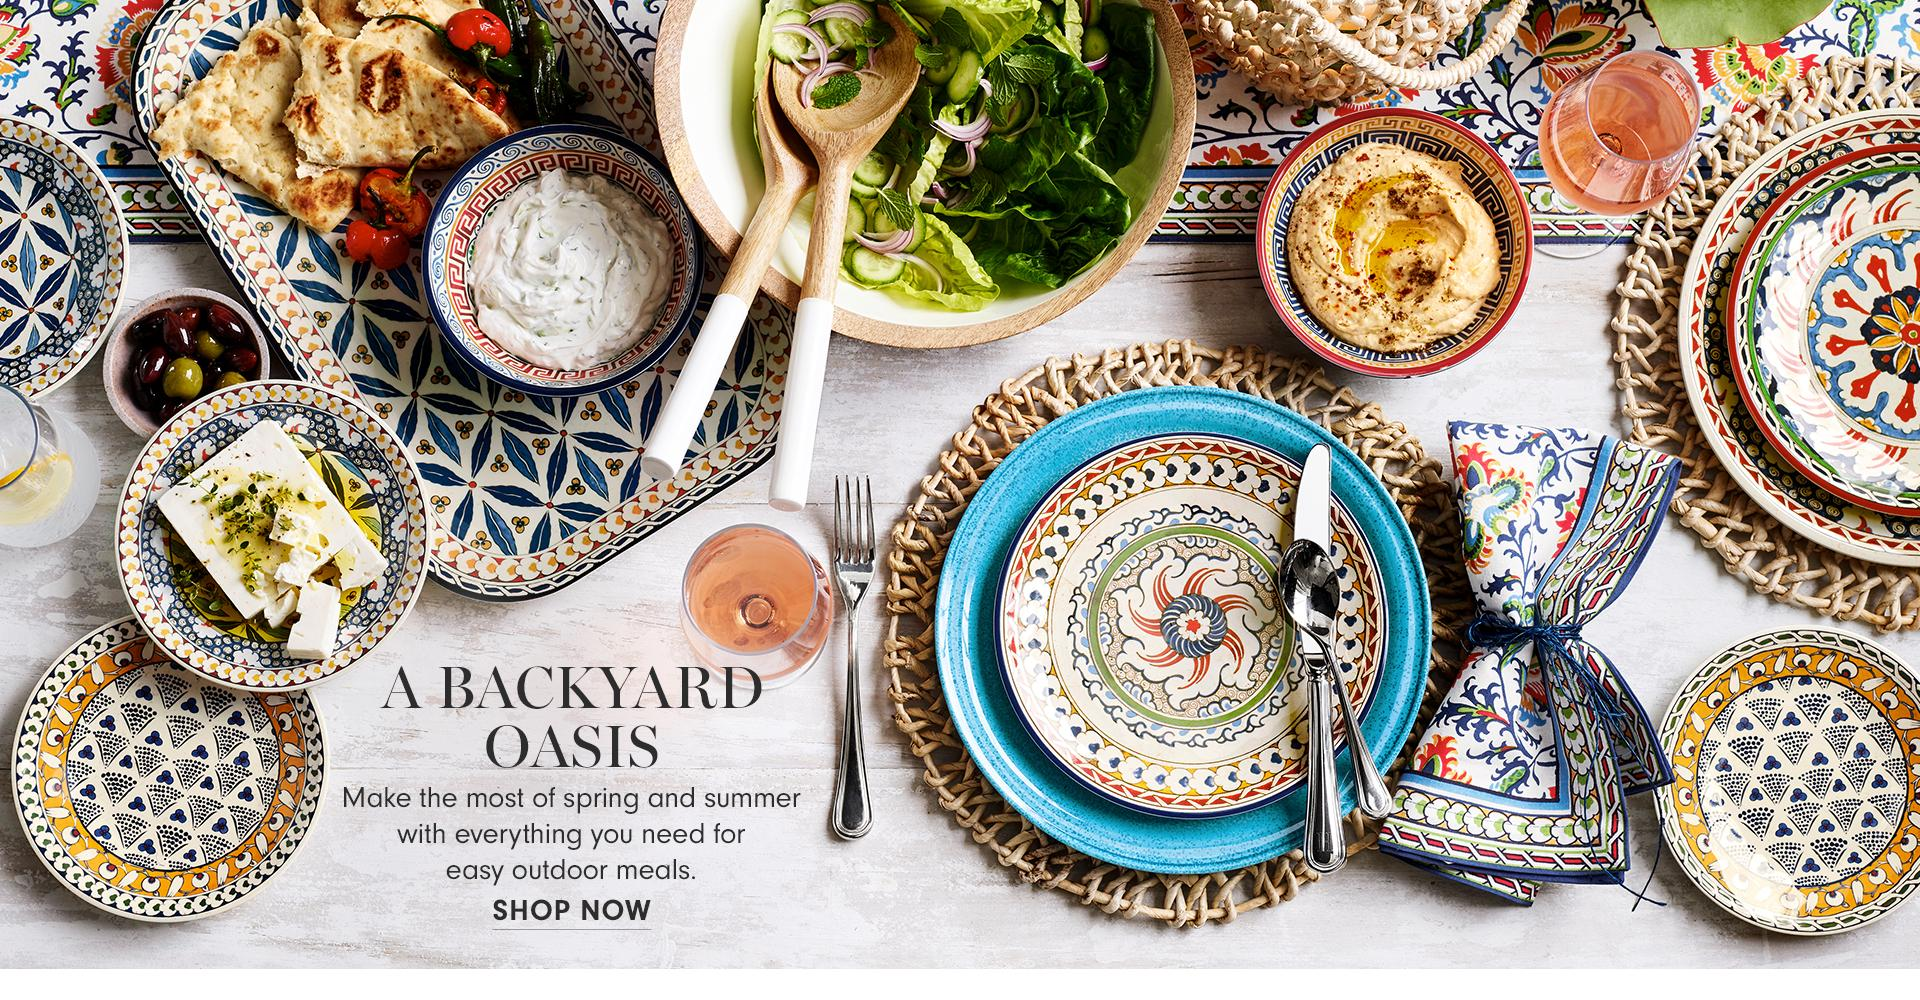 A Backyard Oasis | Make the most of spring and summer with everything you need for easy outdoor meals. | Shop Now